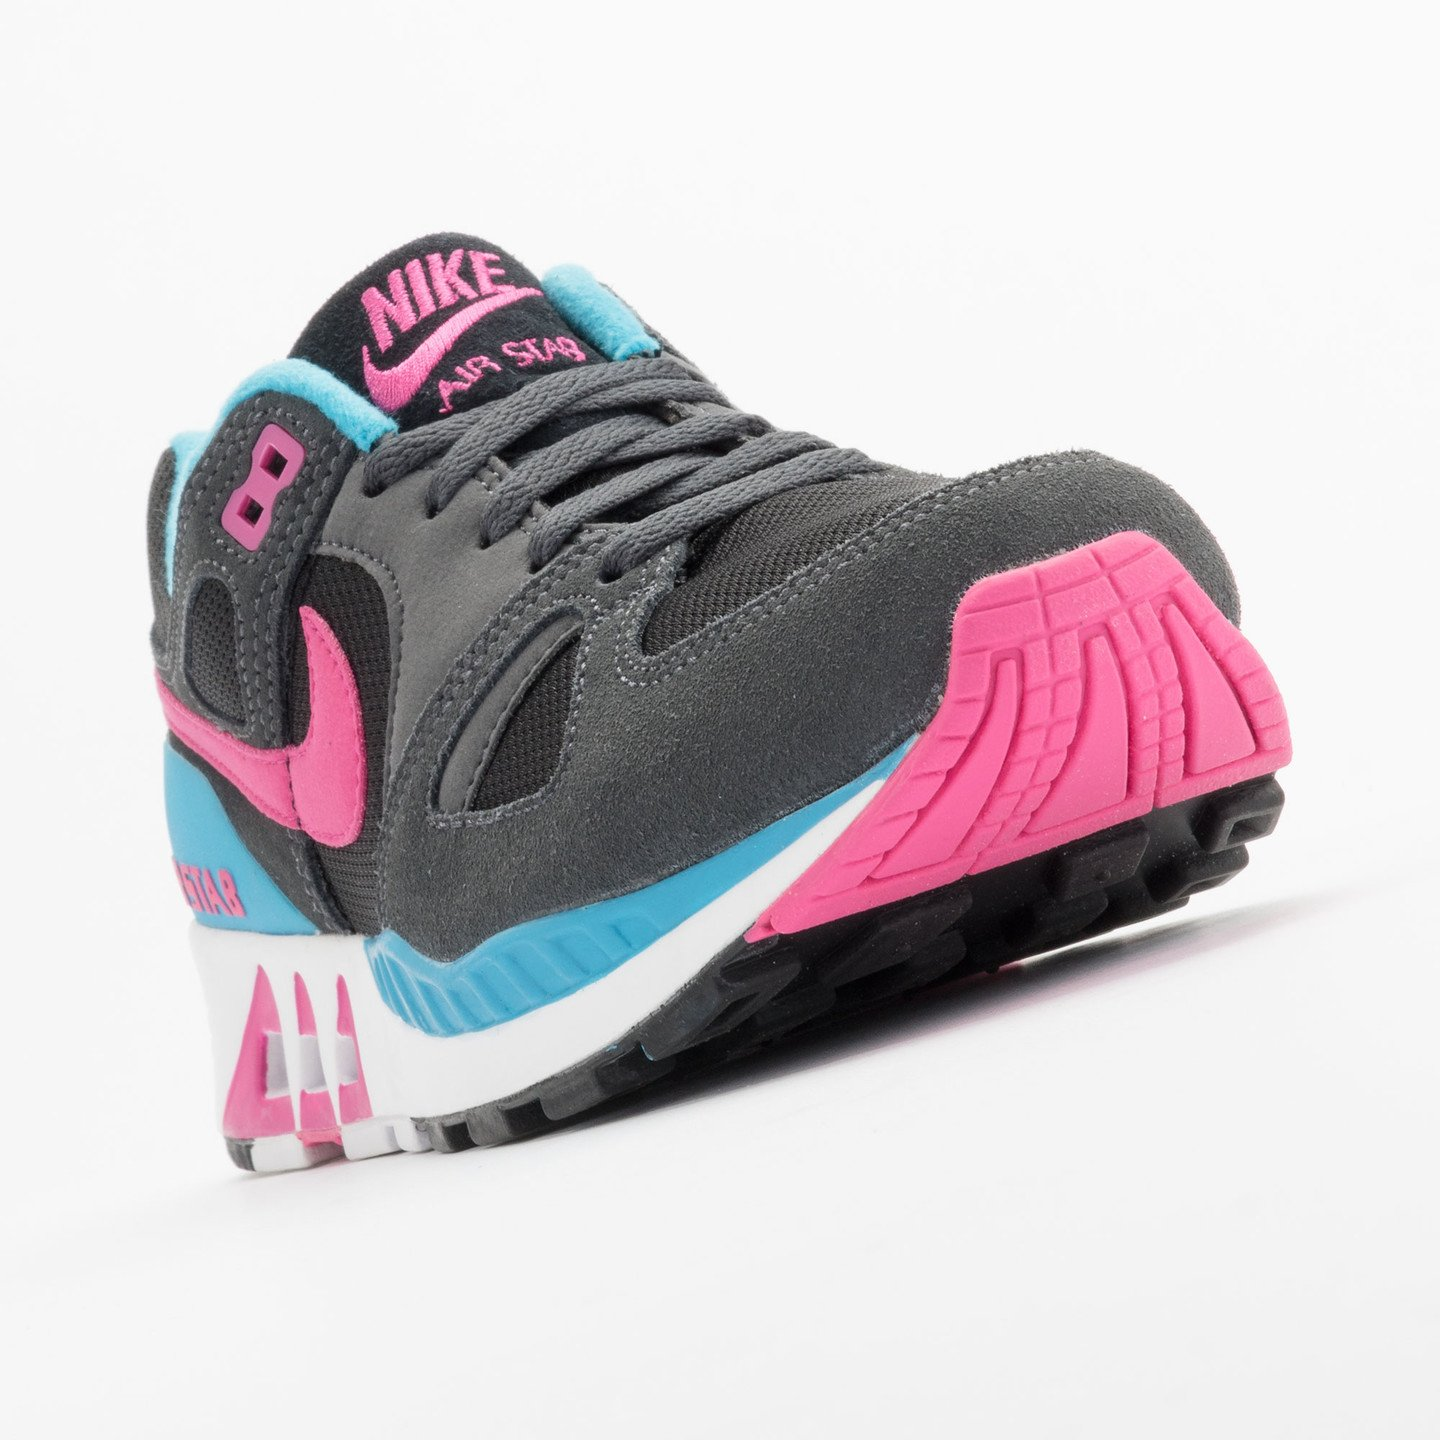 Nike Air Stab Black/Hot Pink-Anthrct-Bl Lgn 312451-004-47